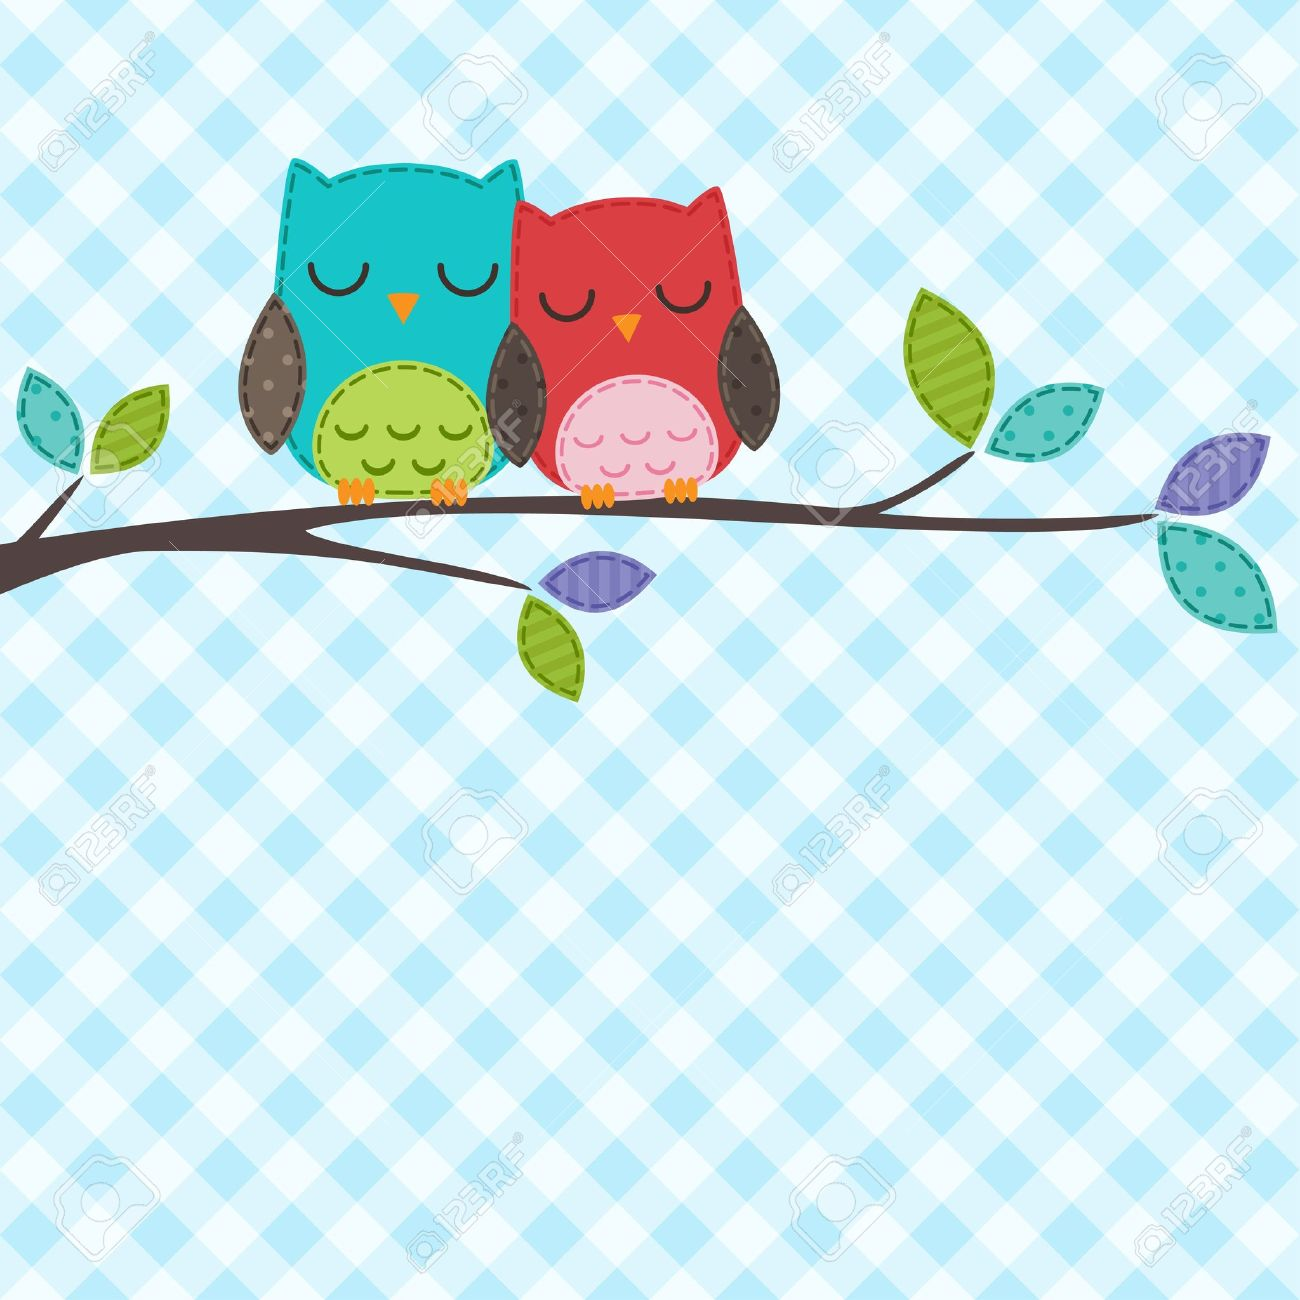 backgrounds with couple of owls on the branch - 13843840